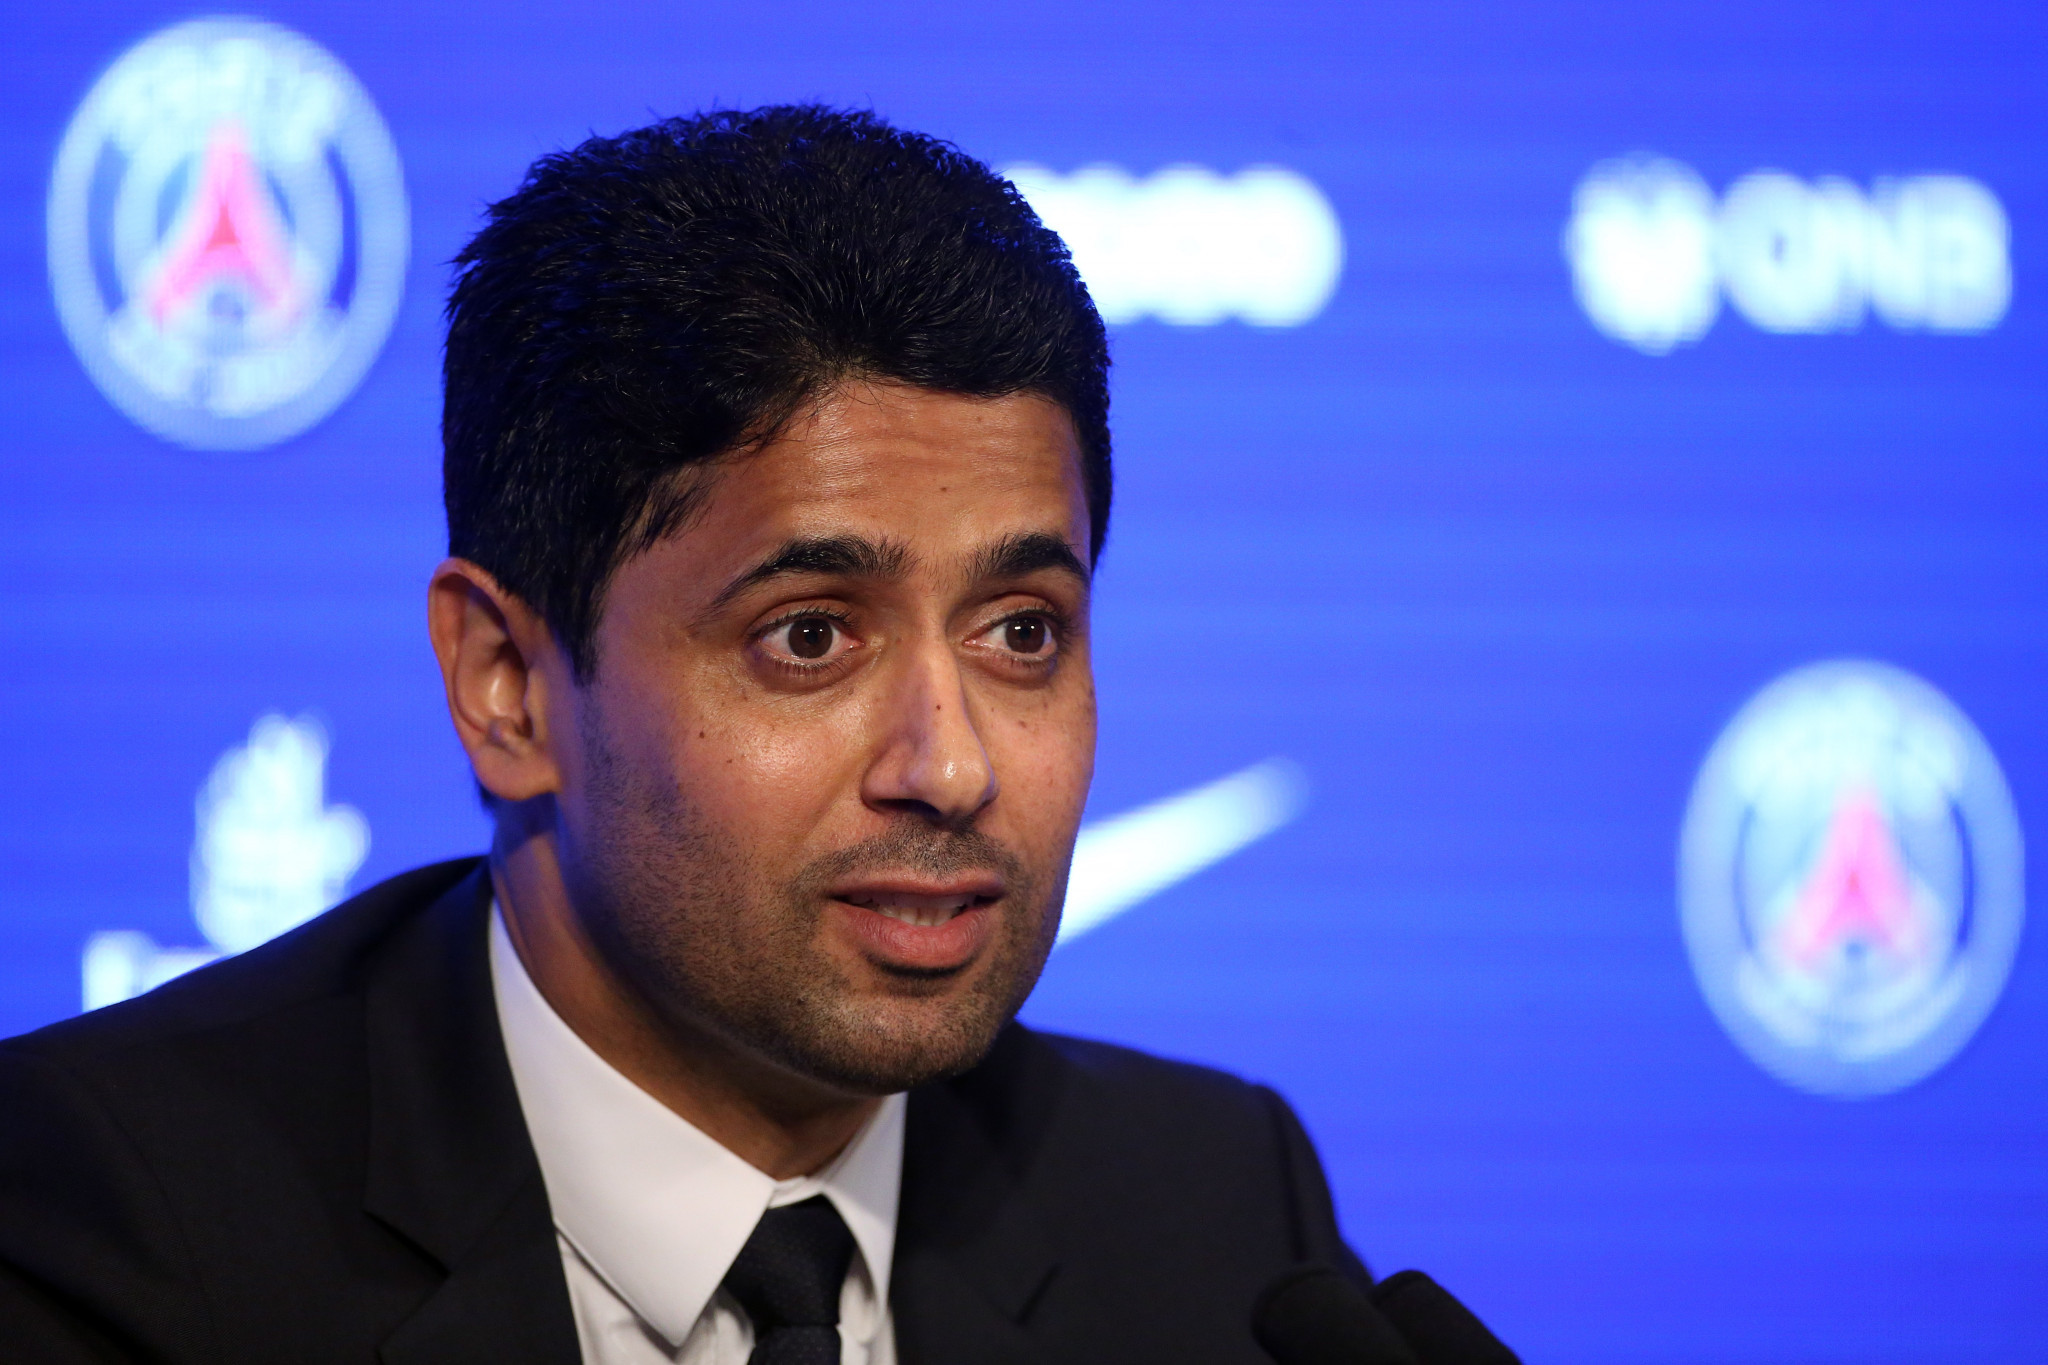 Criminal proceedings opened against PSG chairman and former FIFA secretary general